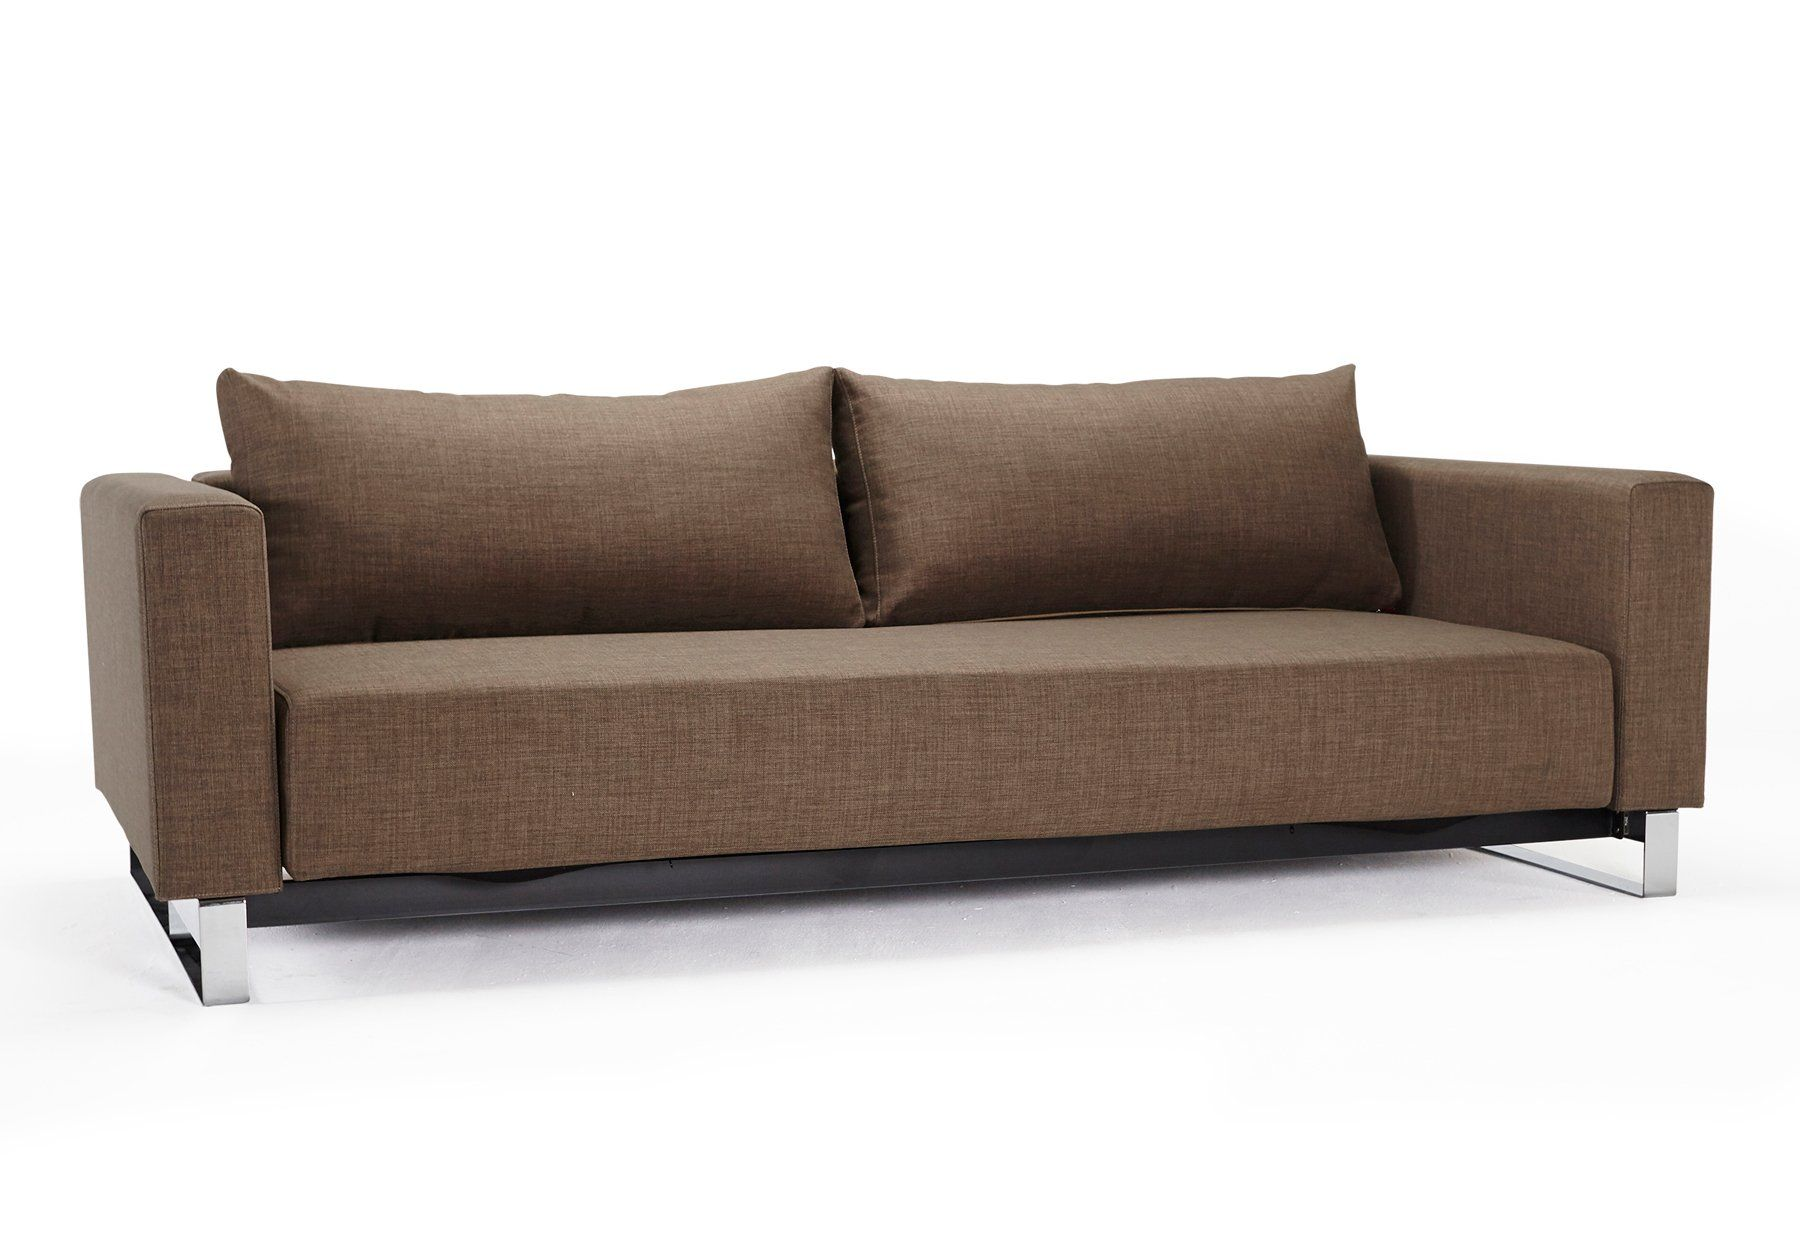 Cassius Sleek Excess Lounger Sofa Bed Honormill Furniture